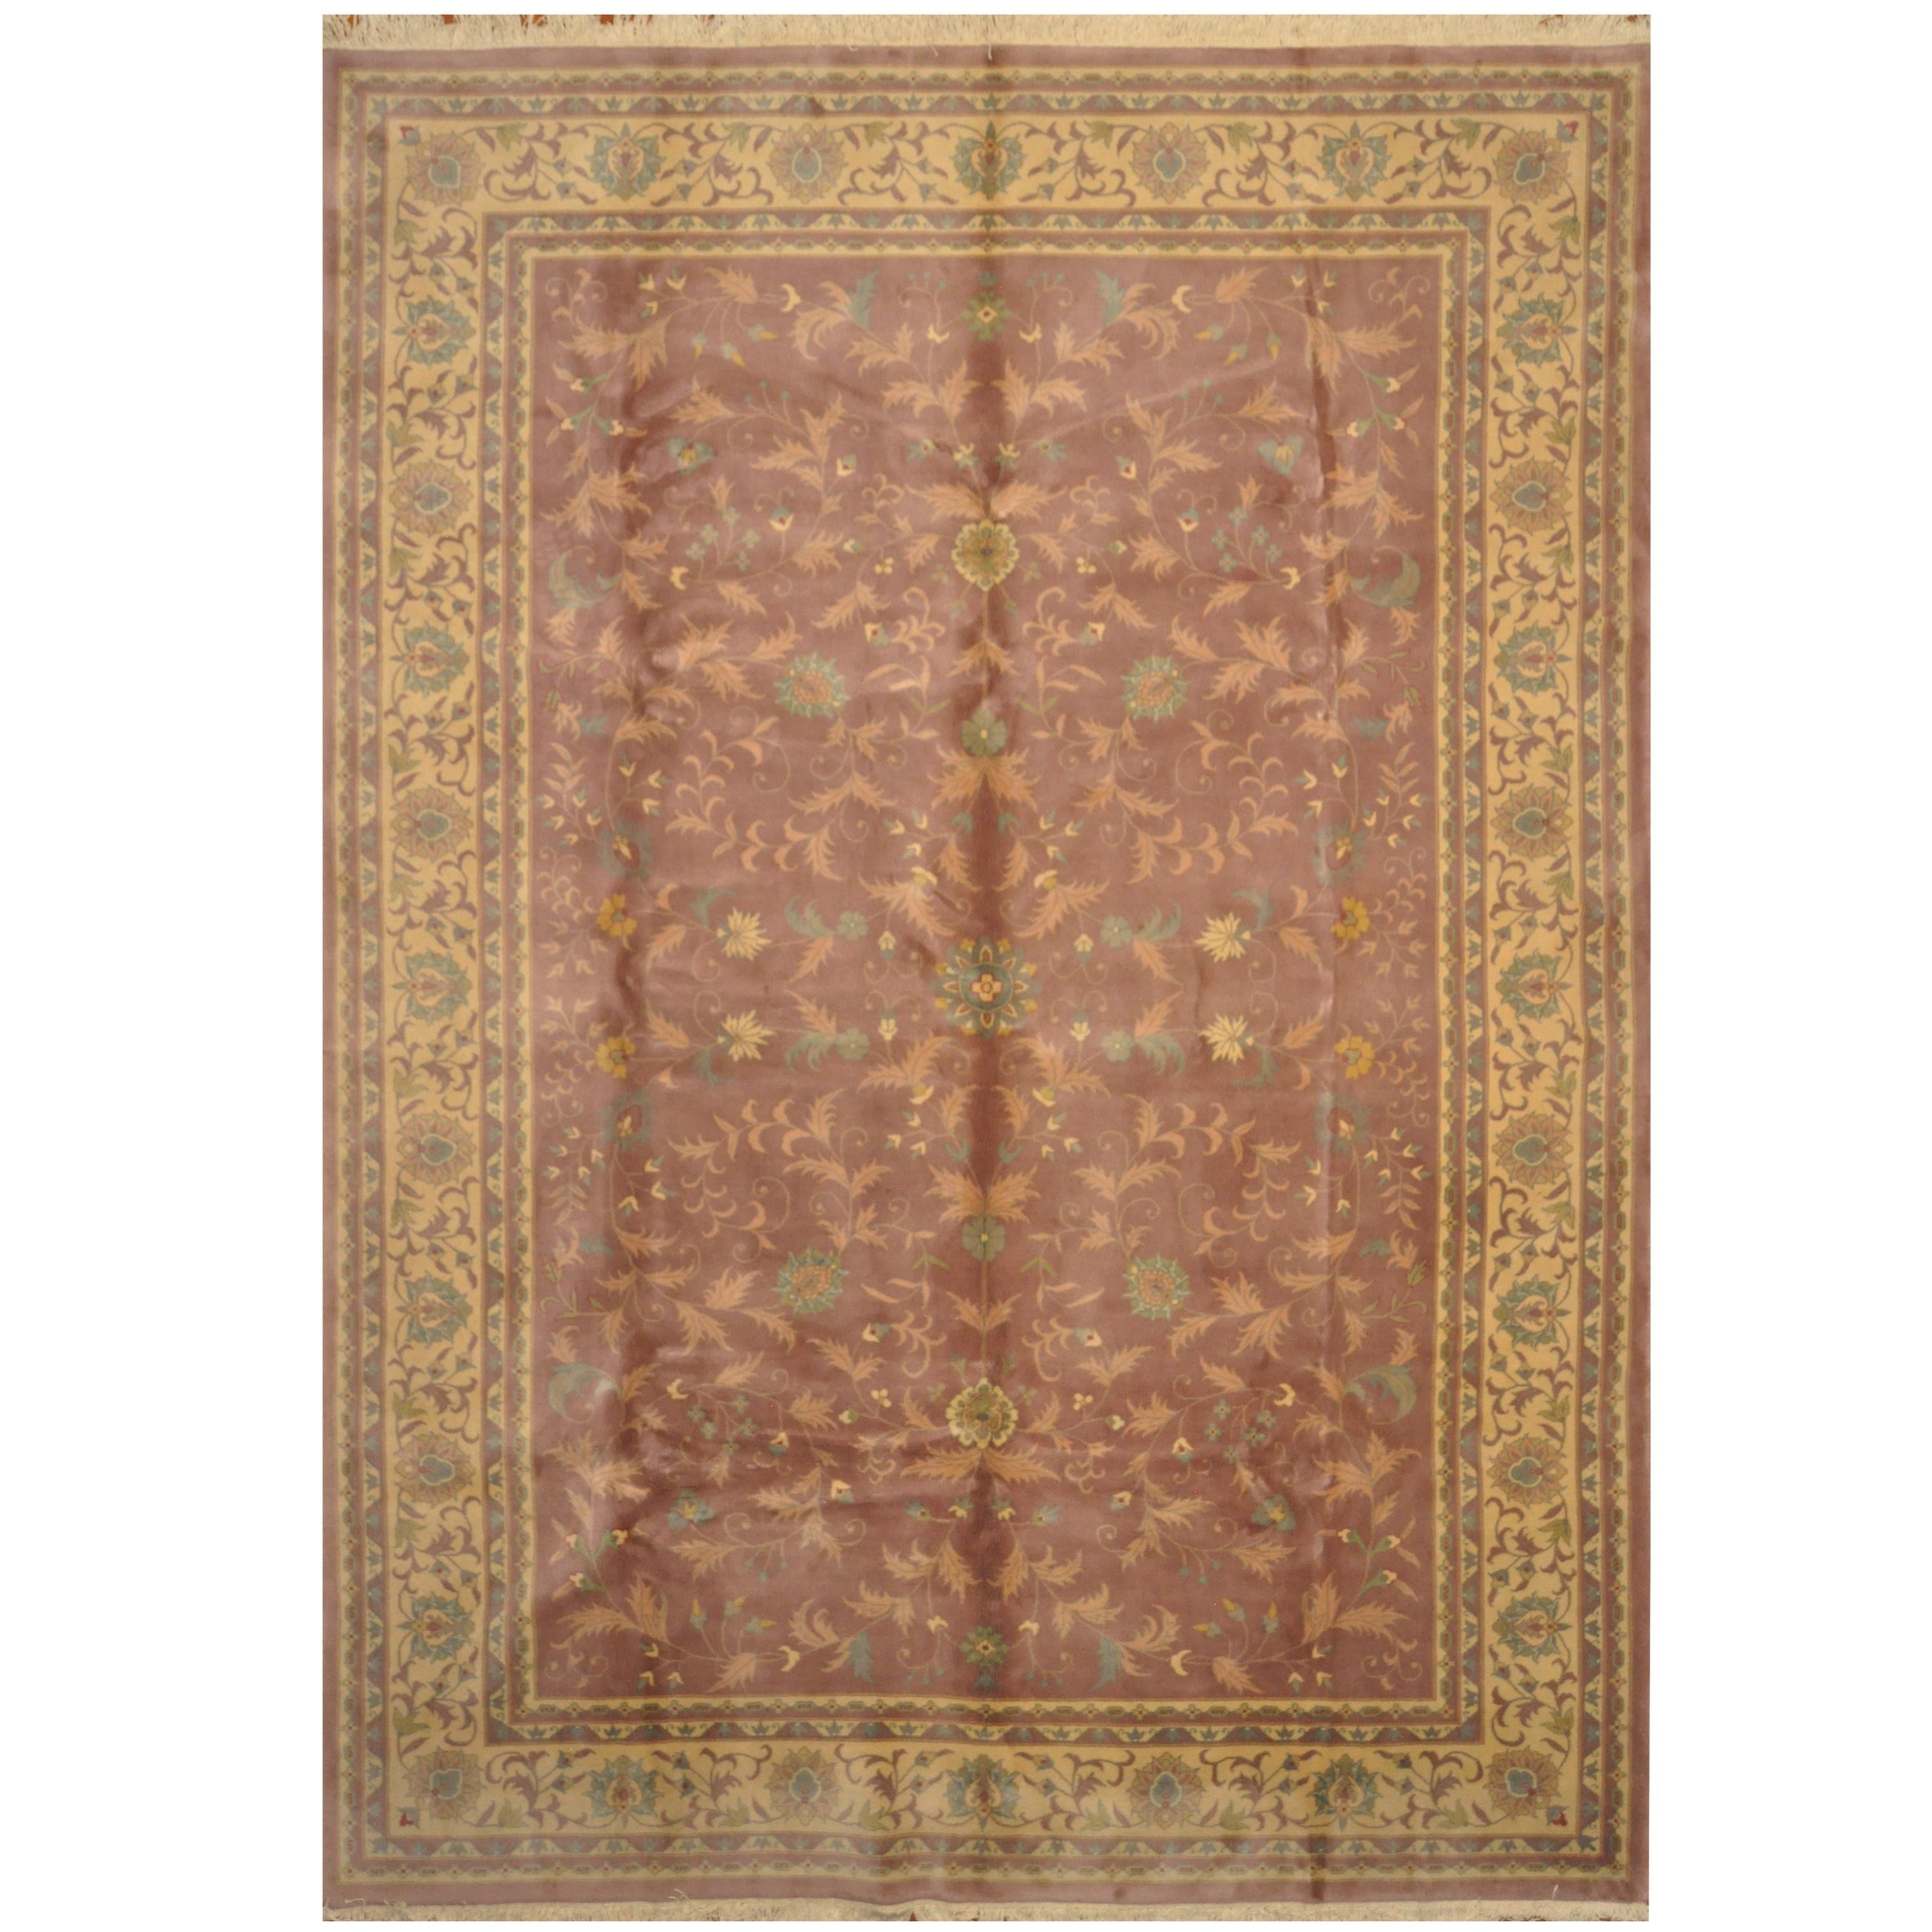 Indo Hand Knotted William Morris Wool Rug 10 X 14